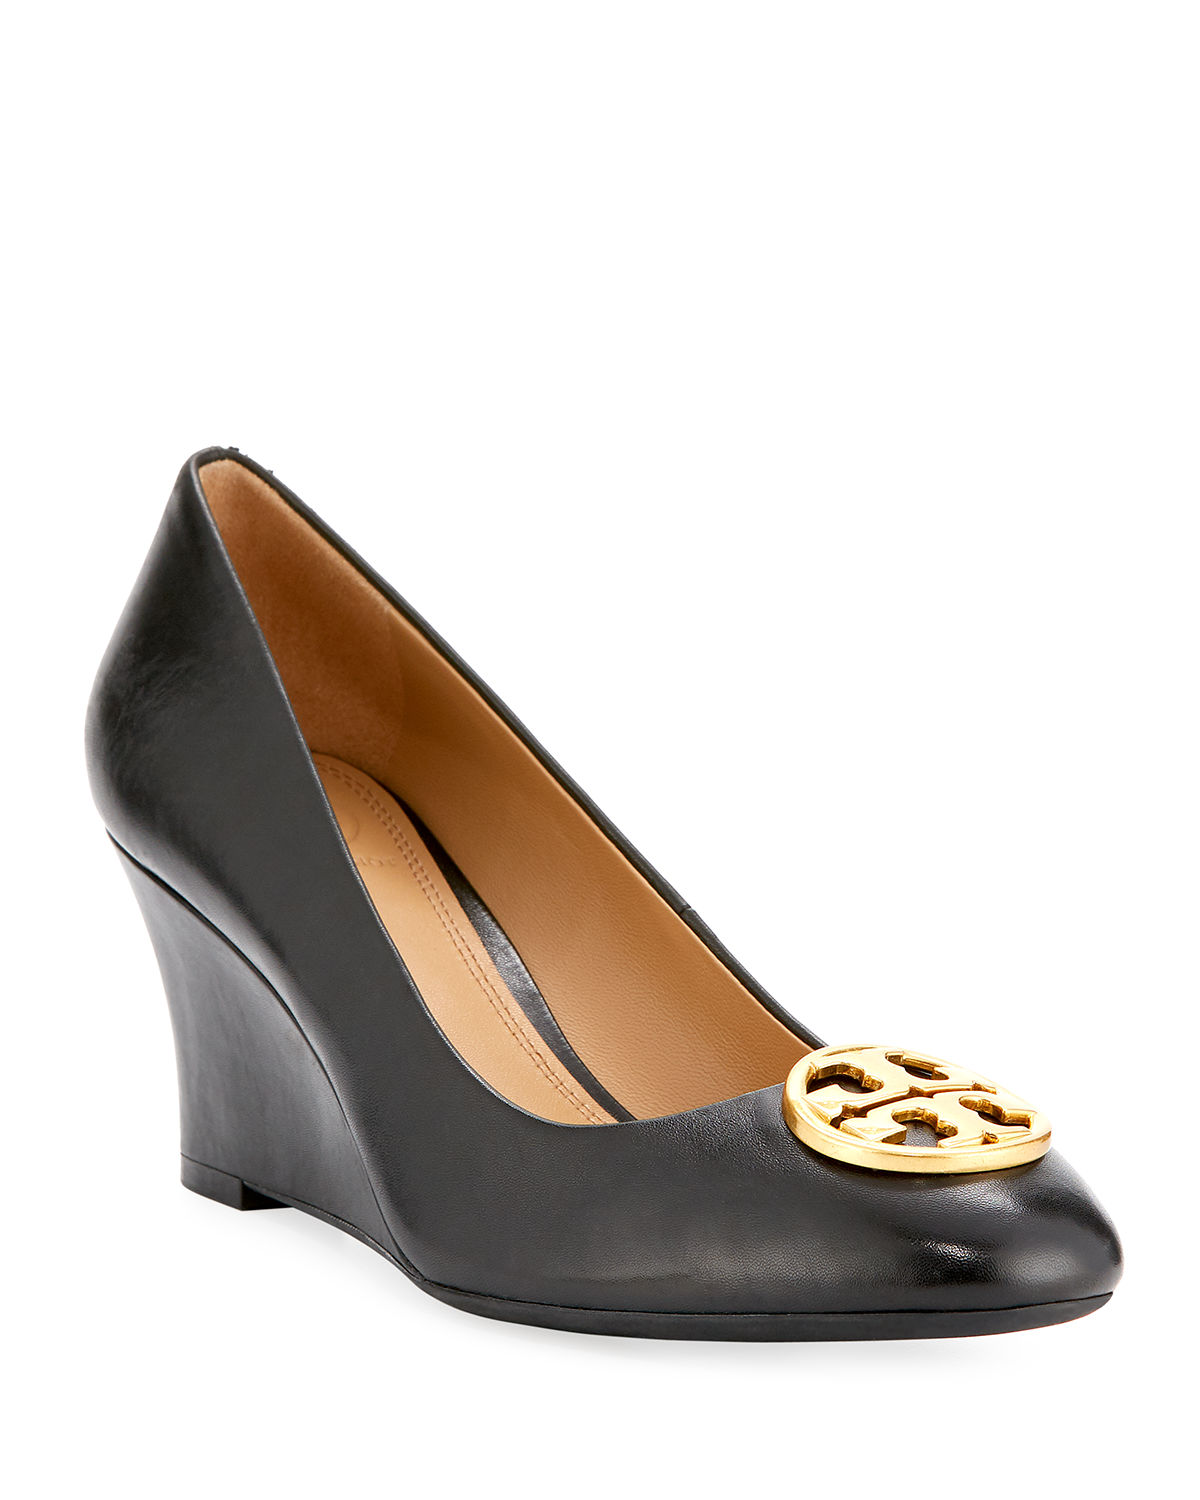 1e21173c7 Tory Burch Chelsea Wedge Medallion Pump